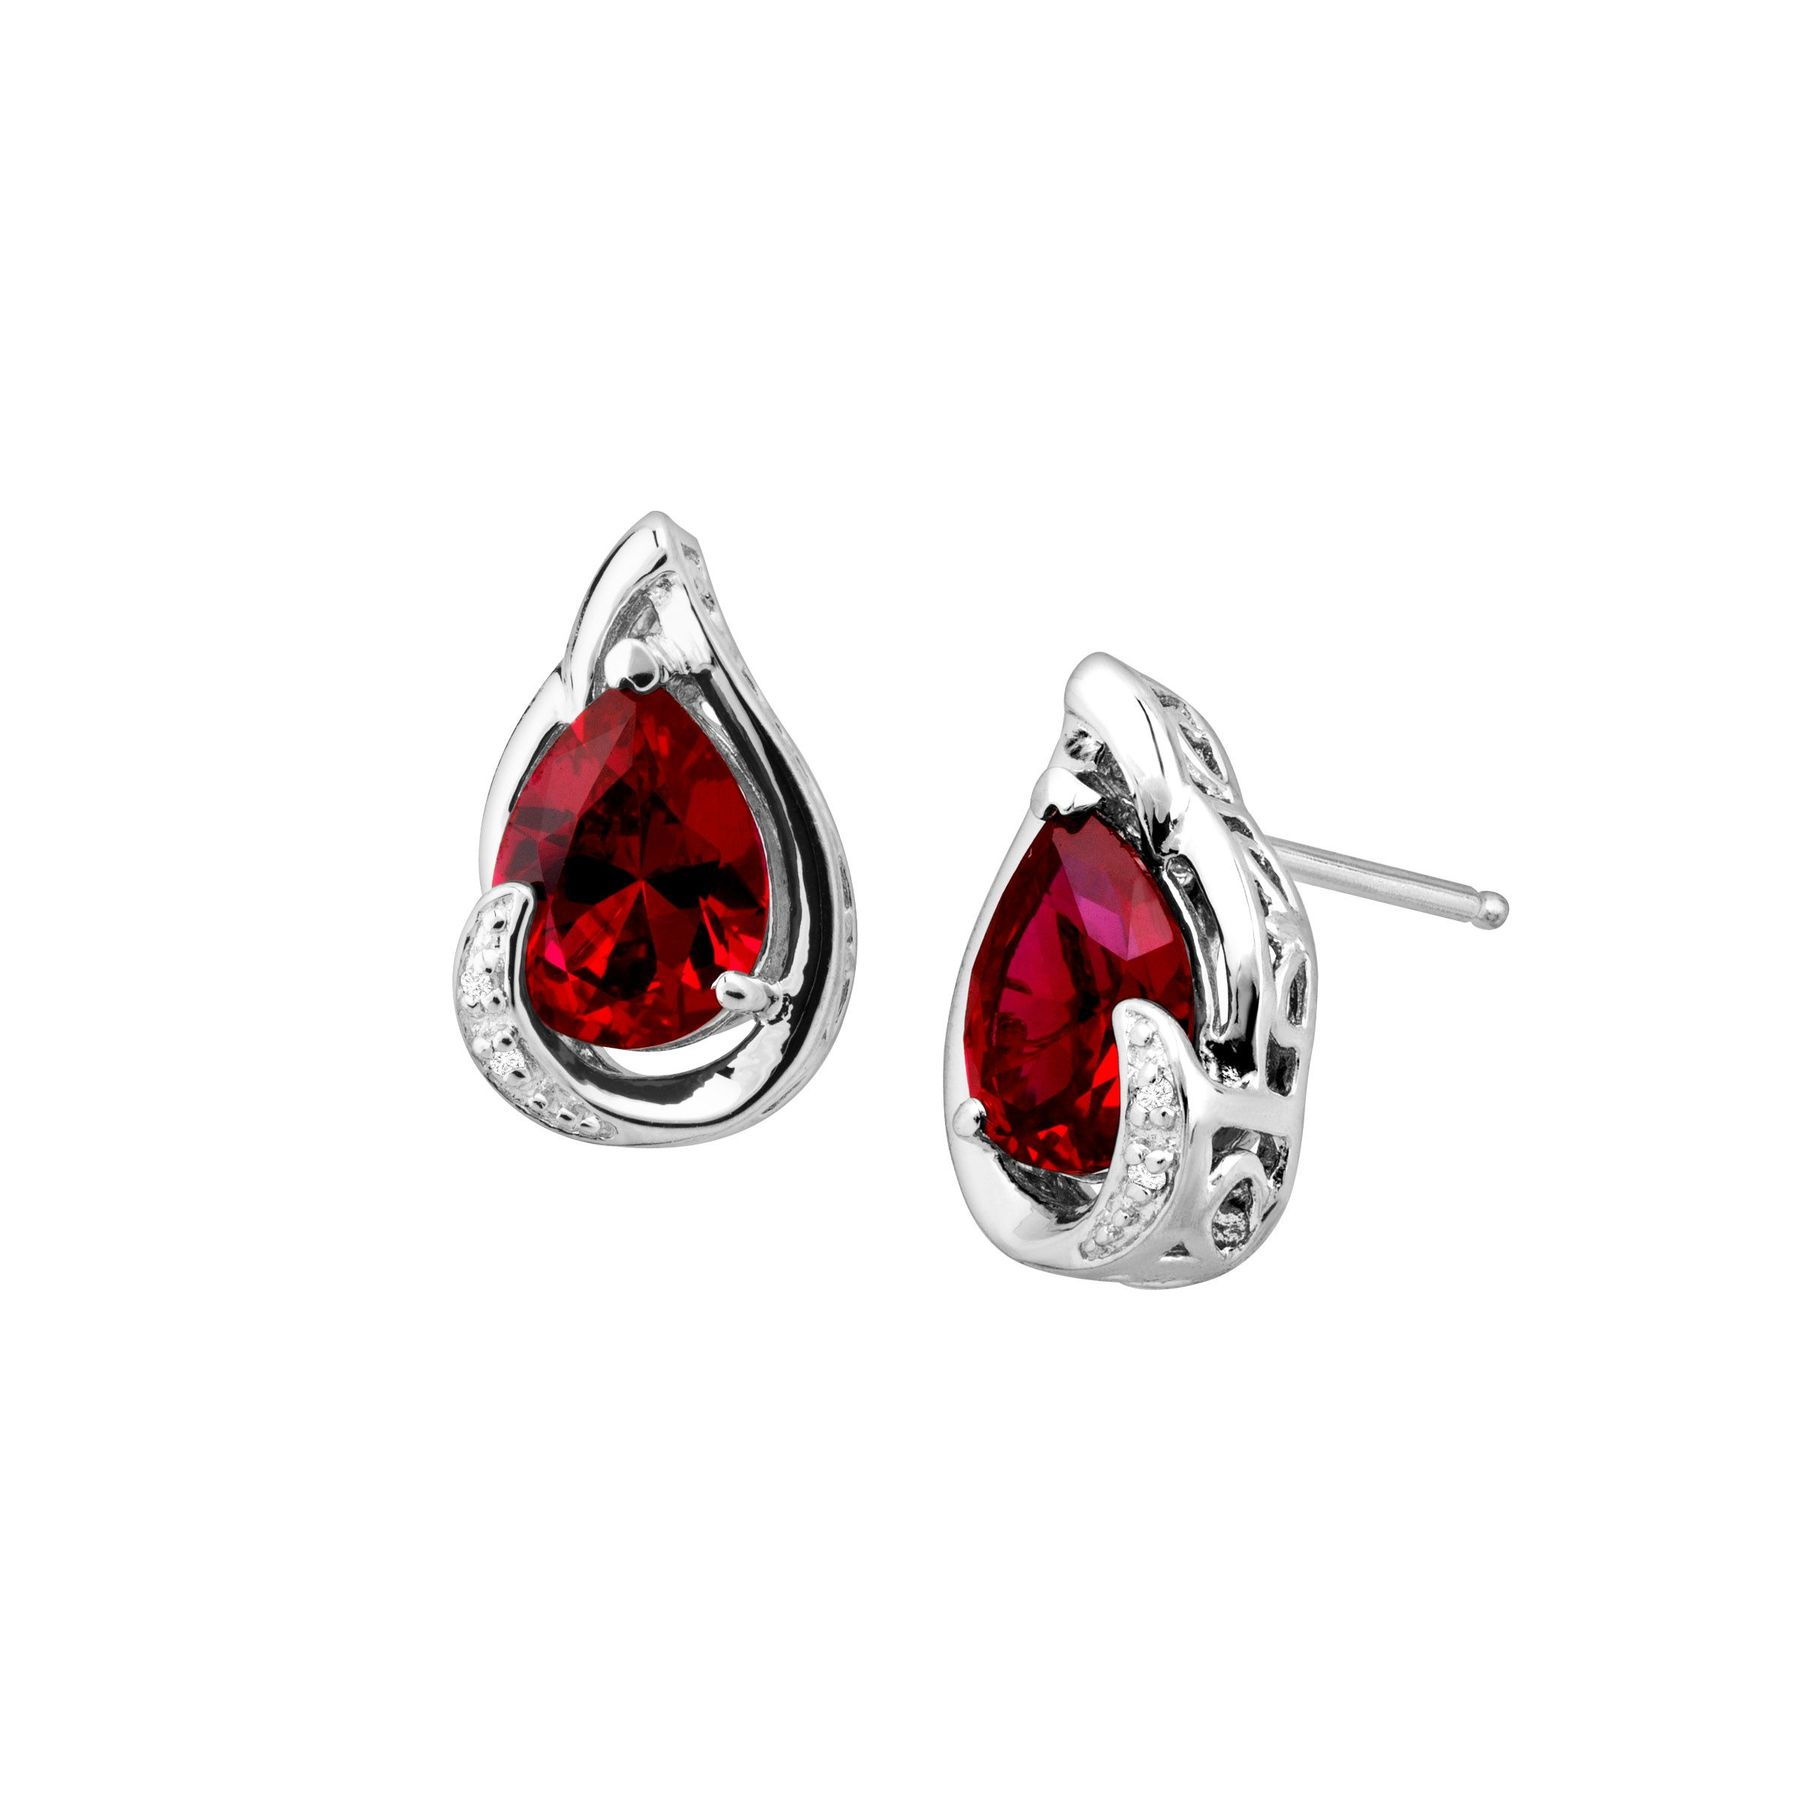 3 Ct Ruby Stud Earrings With Diamonds